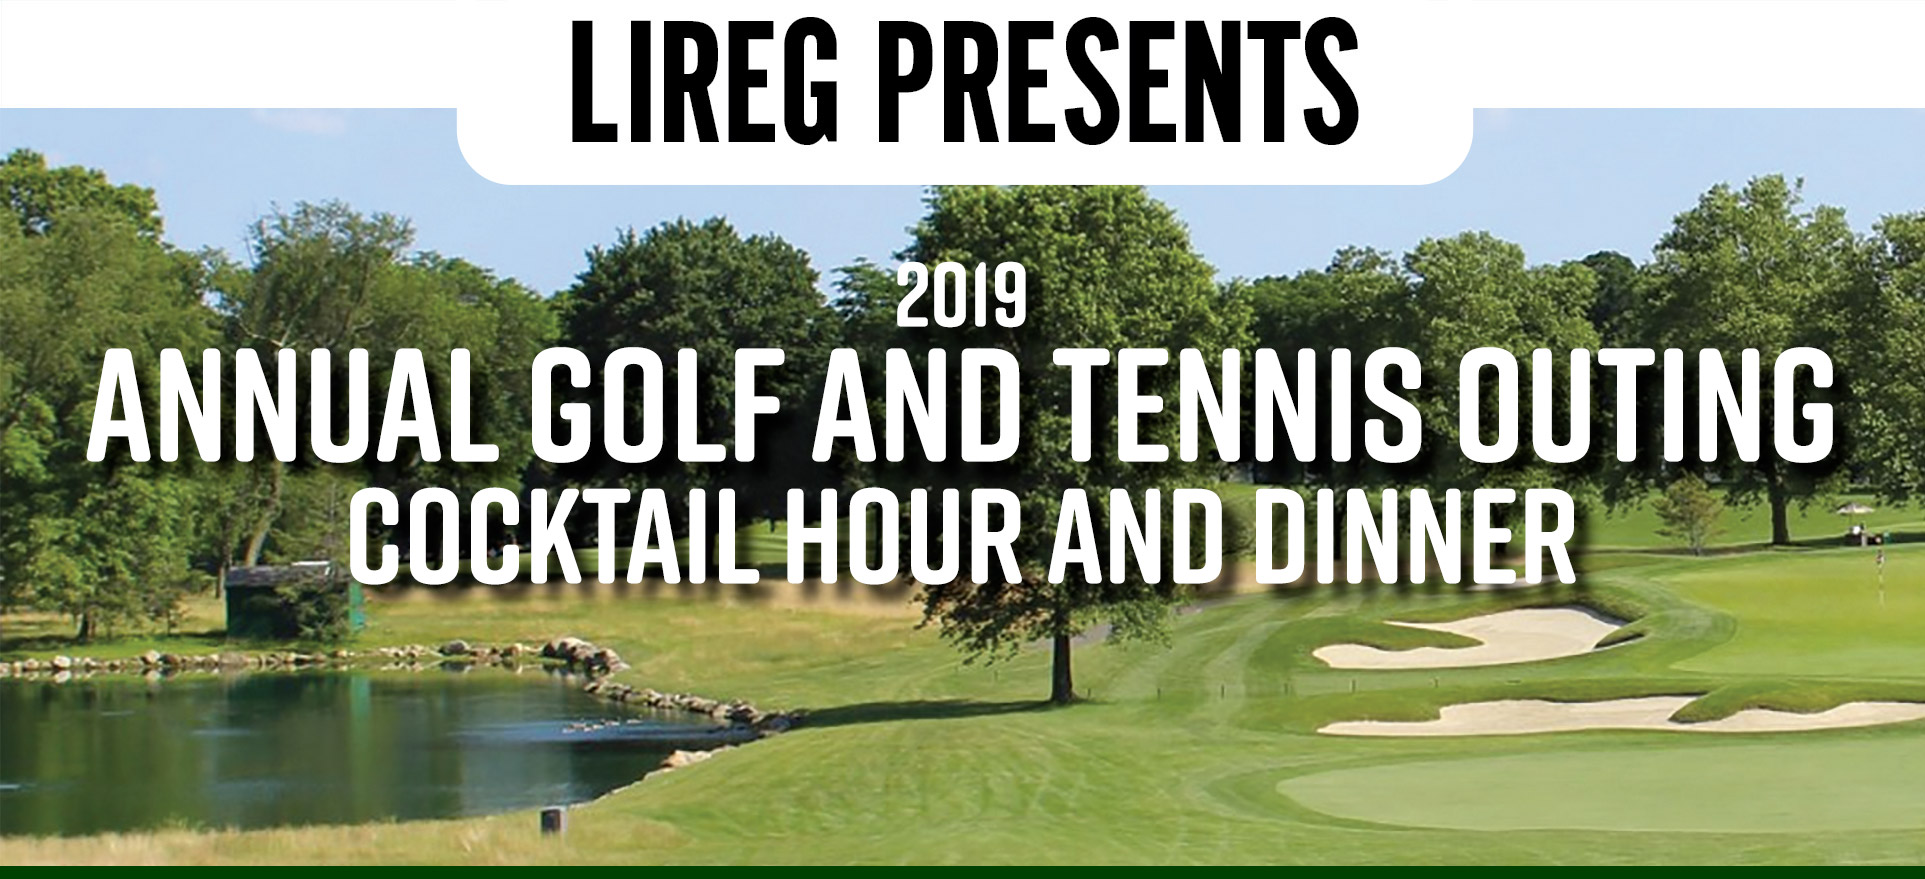 2019 GOLF AND TENNIS OUTING